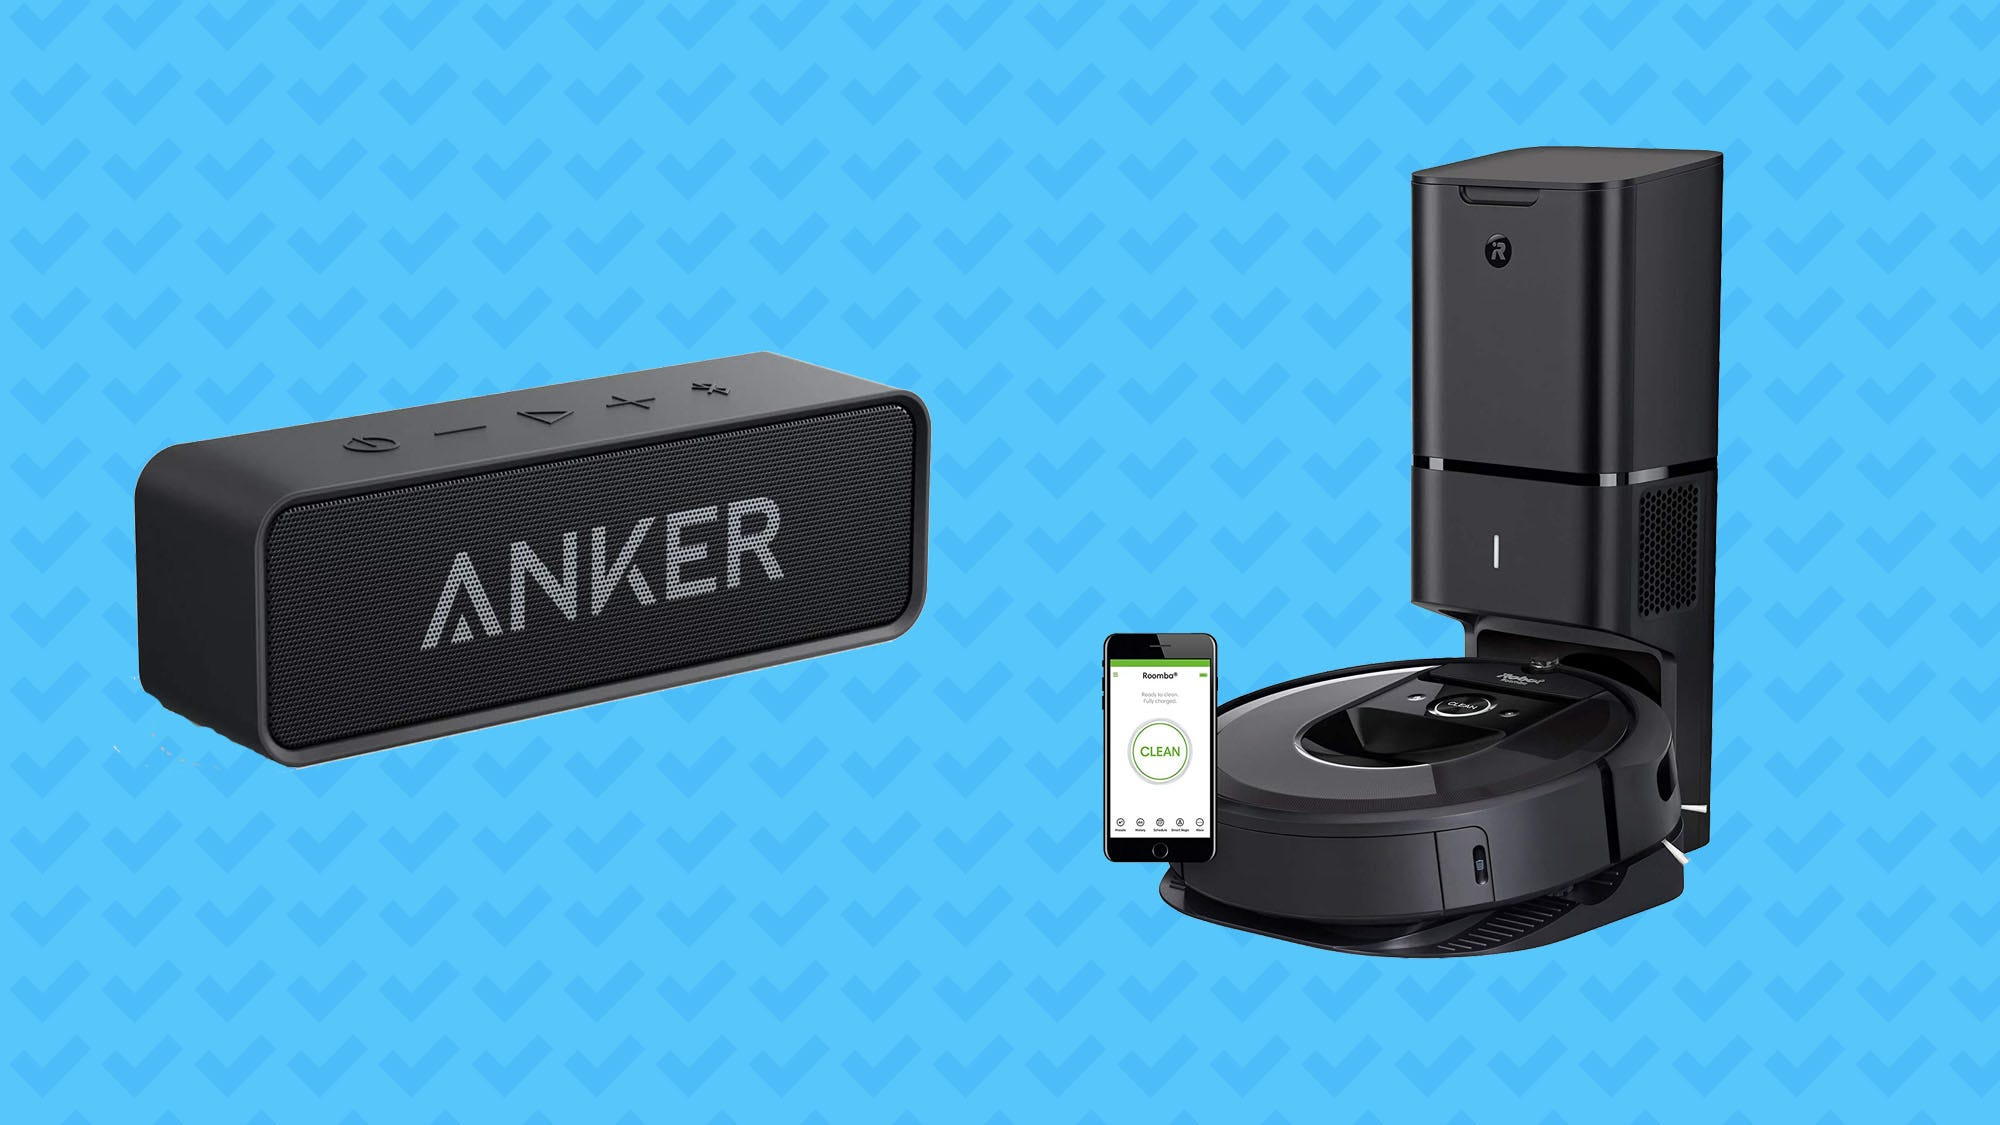 Save on robot vacuums, wireless chargers and more